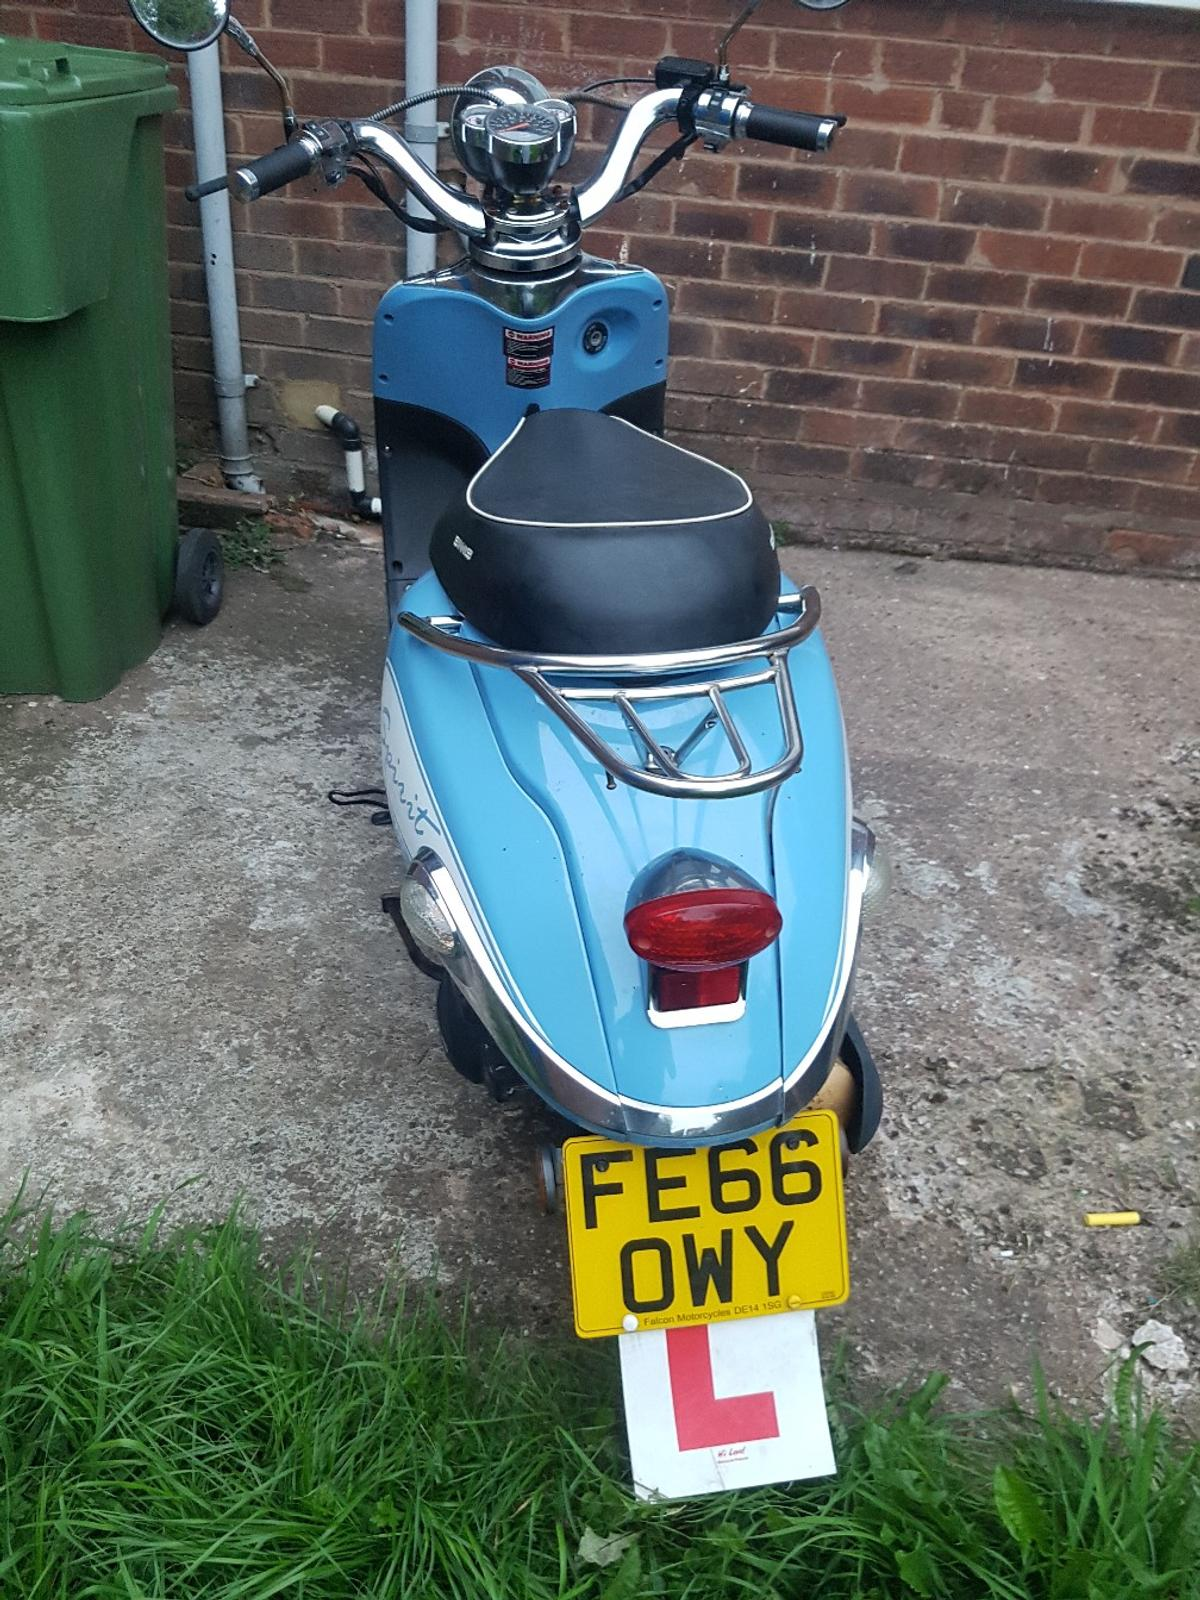 Znen 125cc moped scooter not 50cc px swaps in B31 Birmingham